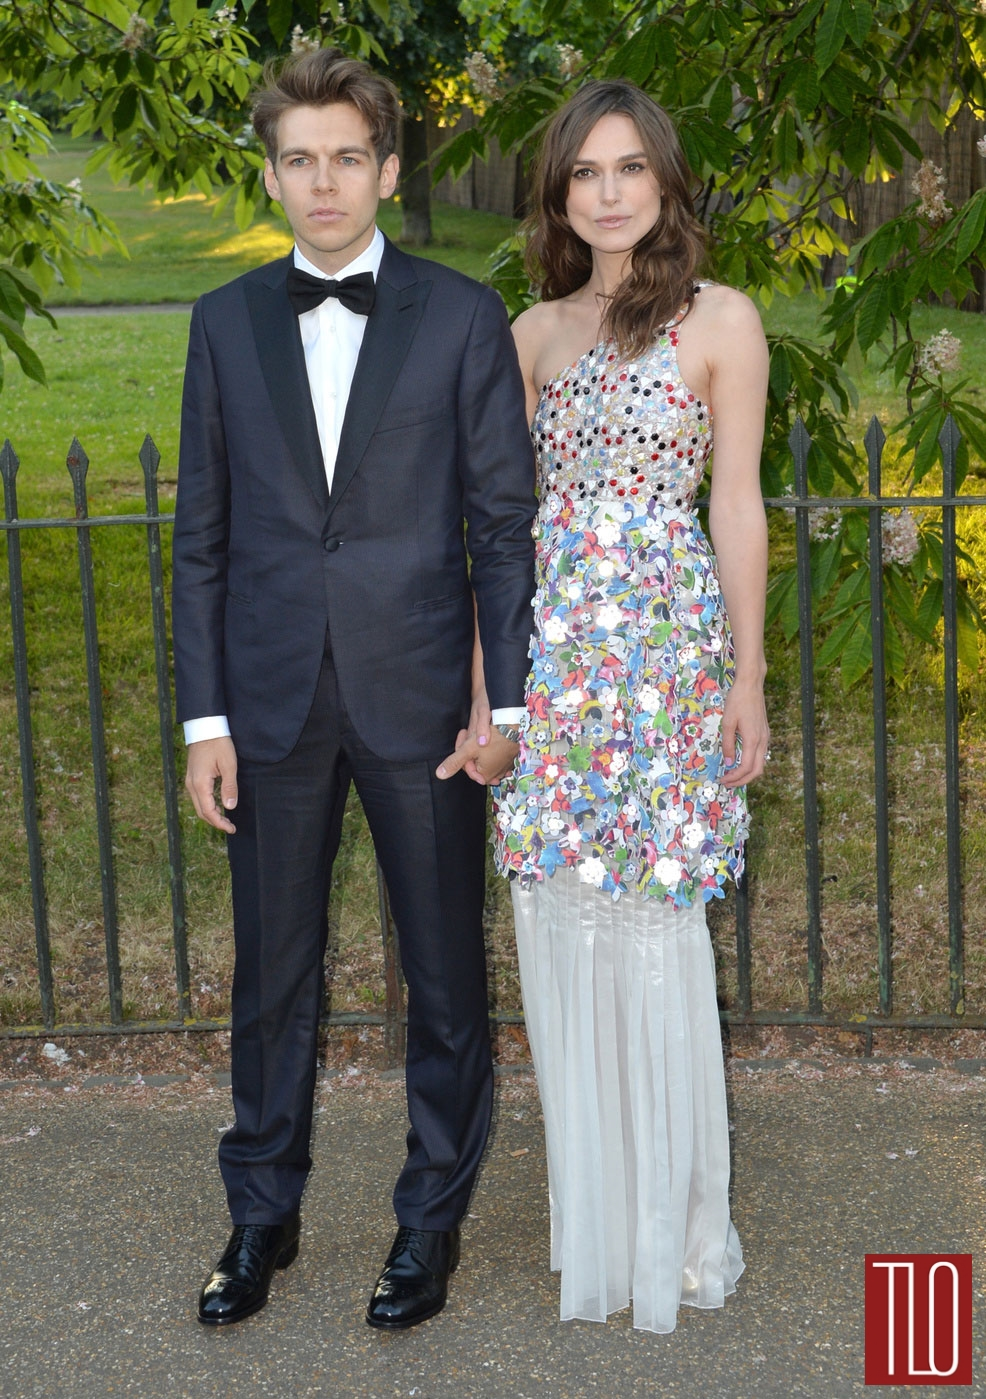 Keira-Knightley-Chanel-Serpentine-Gallery-Summer-Party-Tom-LOrenzo-Site-TLO (1)